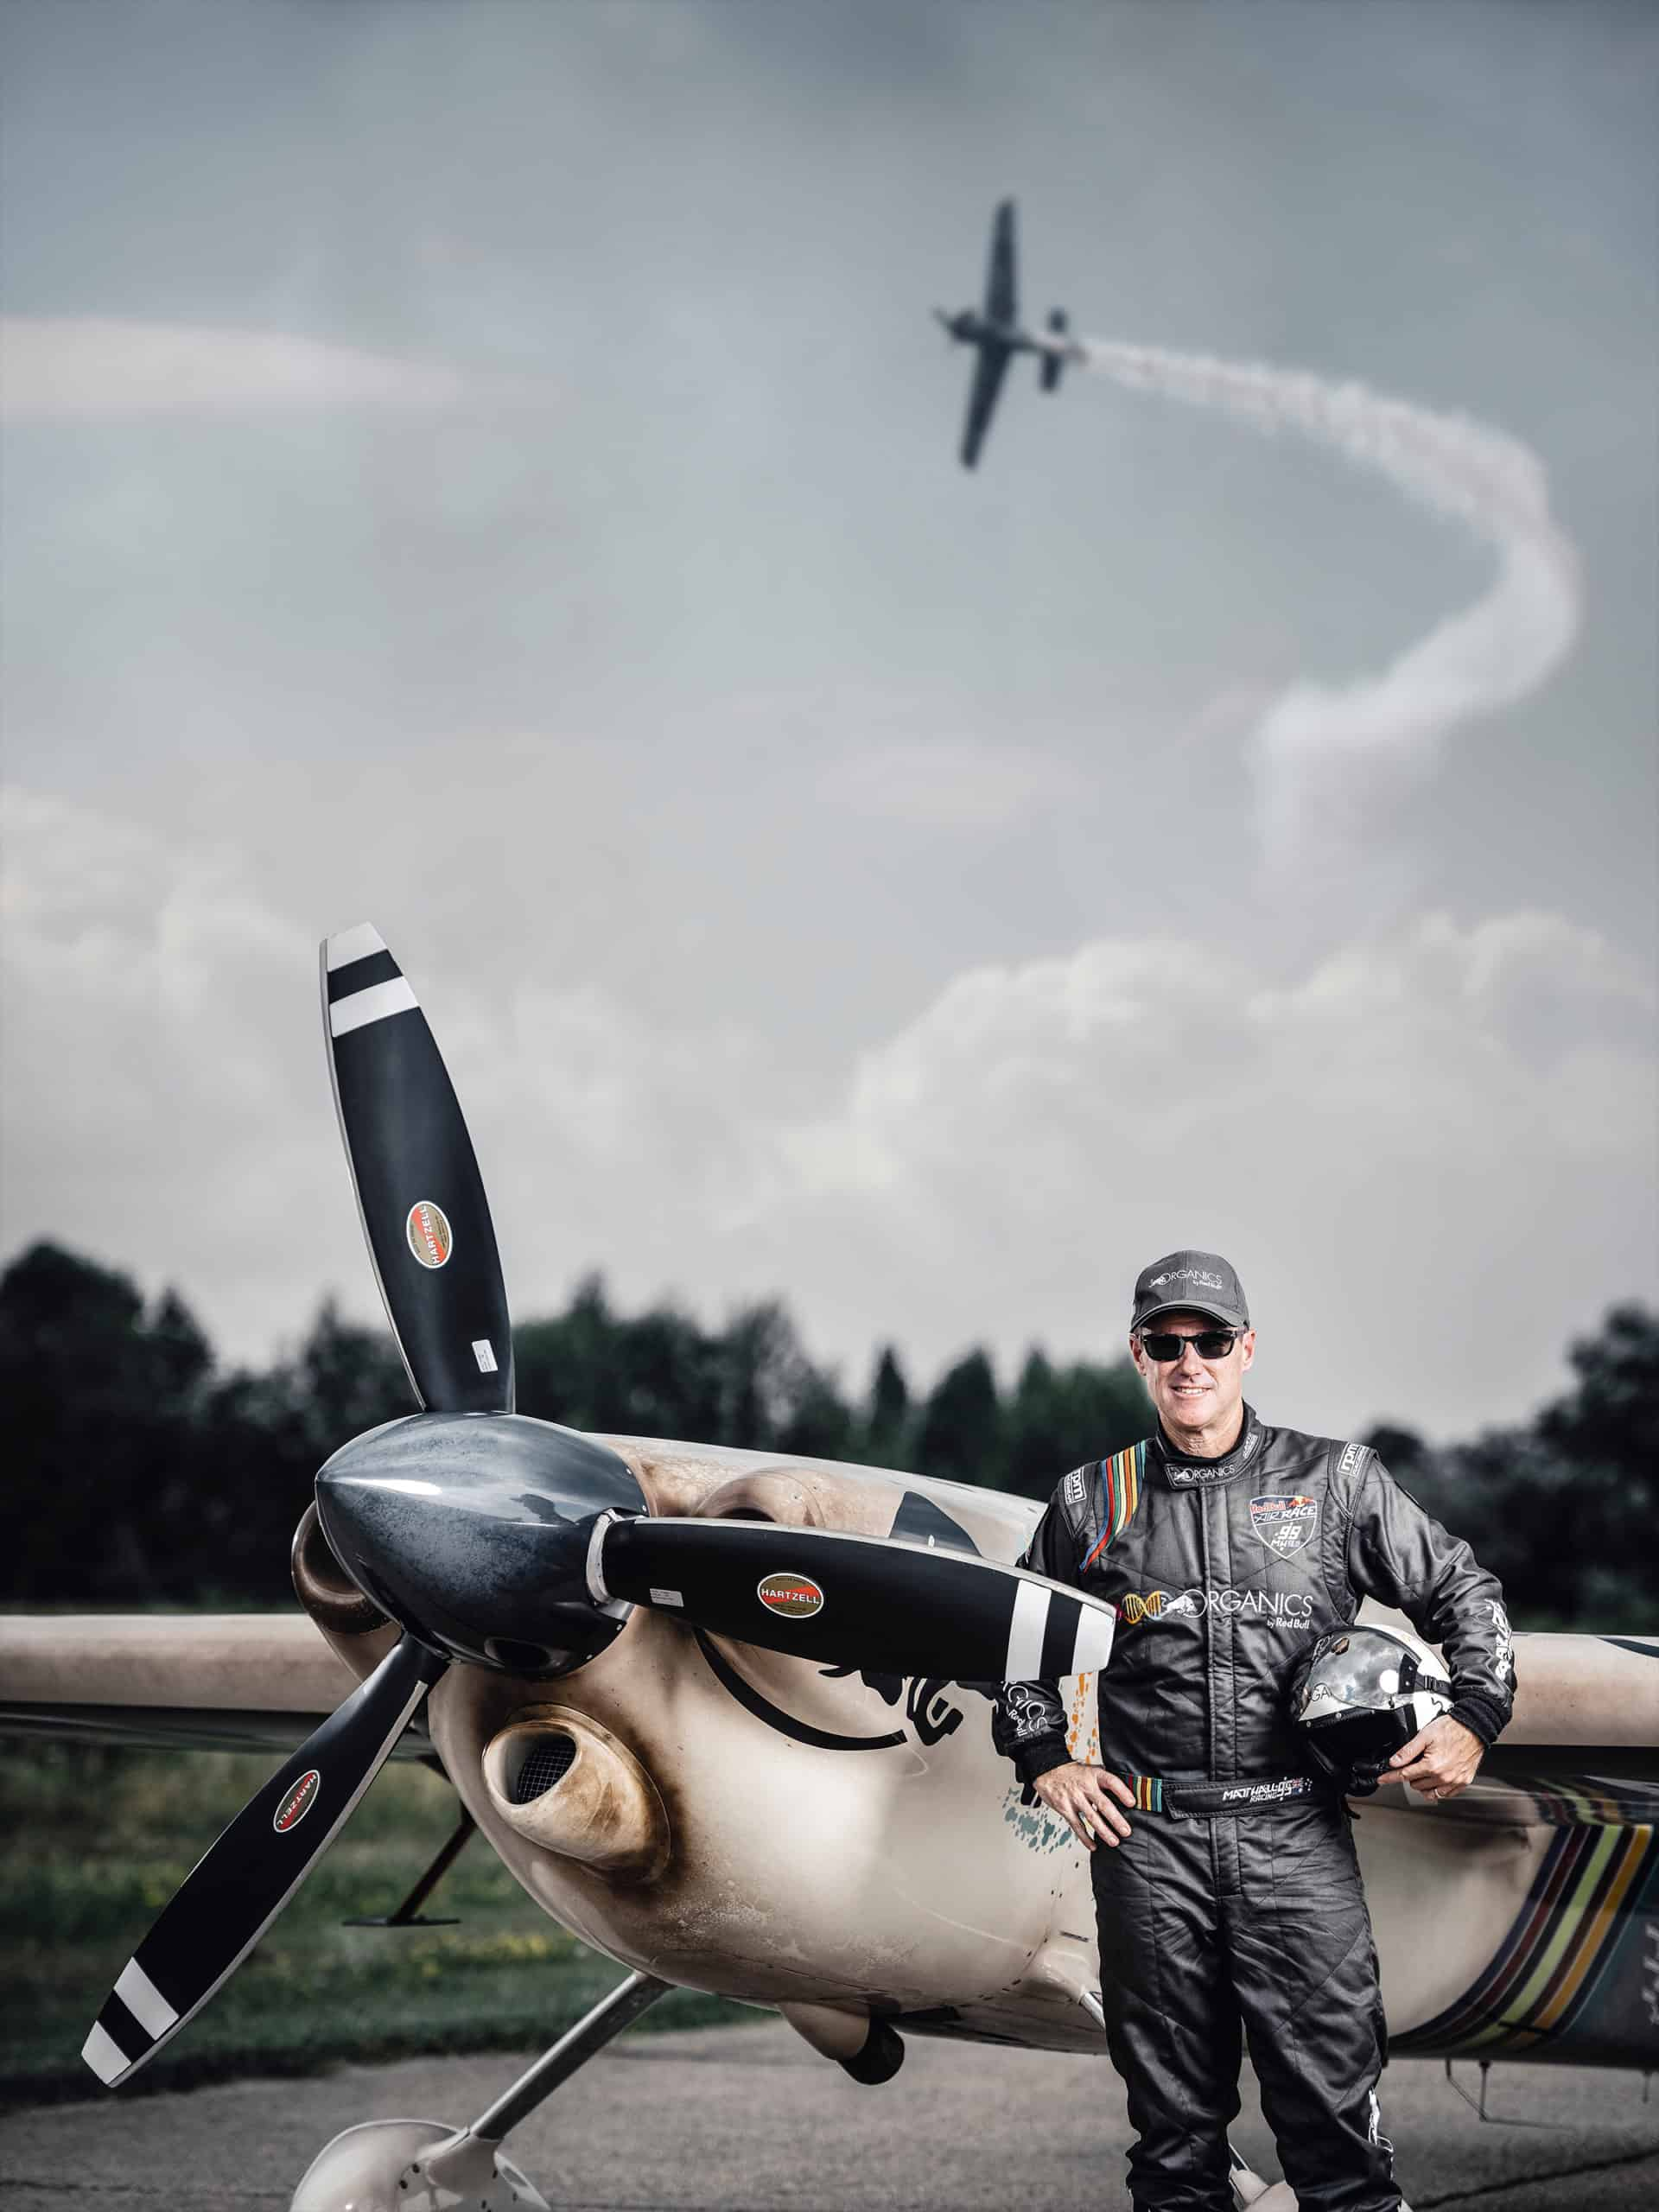 Matt Hall with Kerl Eyewear flying plane Budapest Airrace